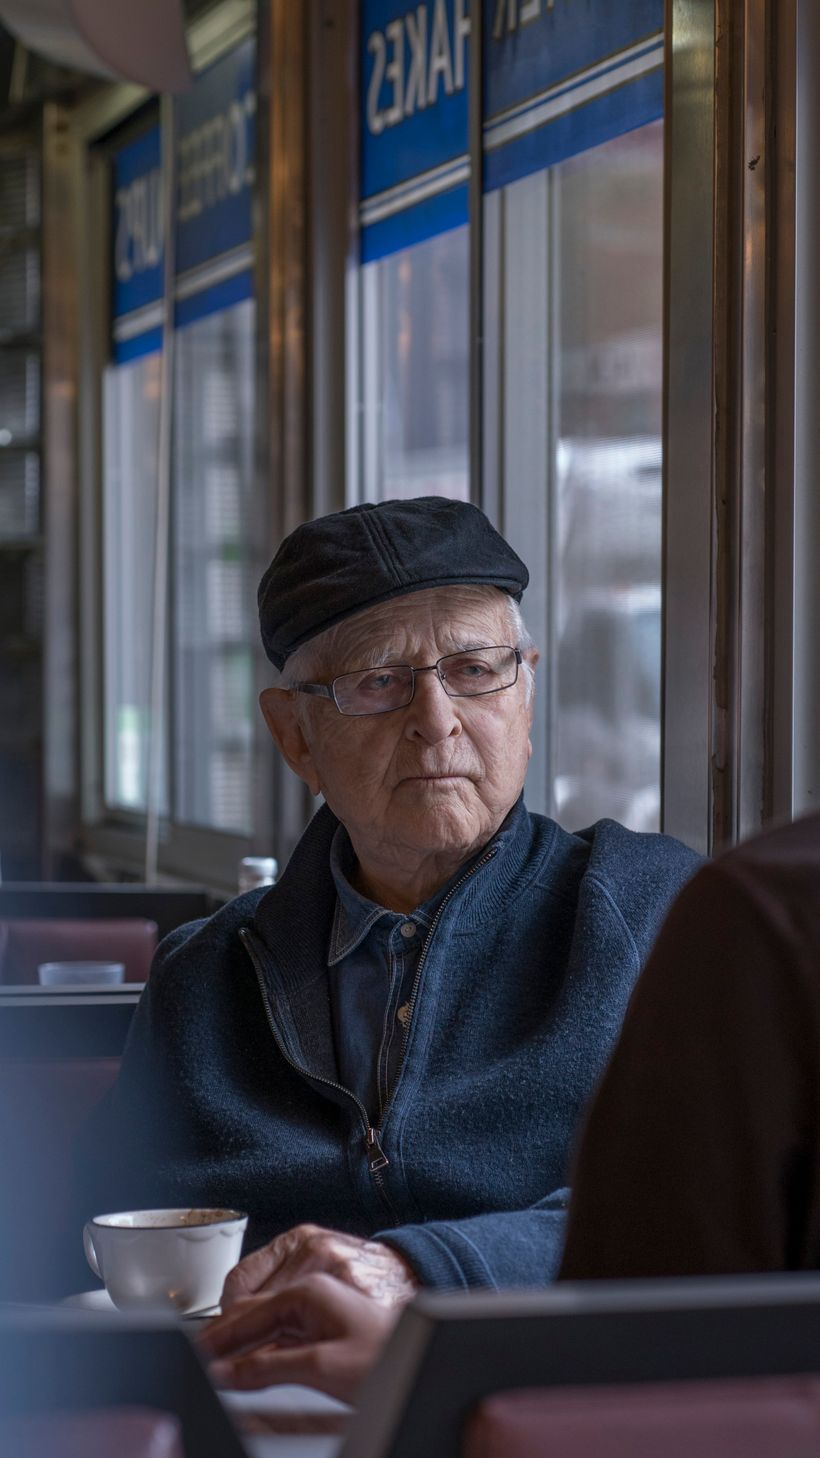 Norman Lear investigates racial discrimination in America Divided on Epix